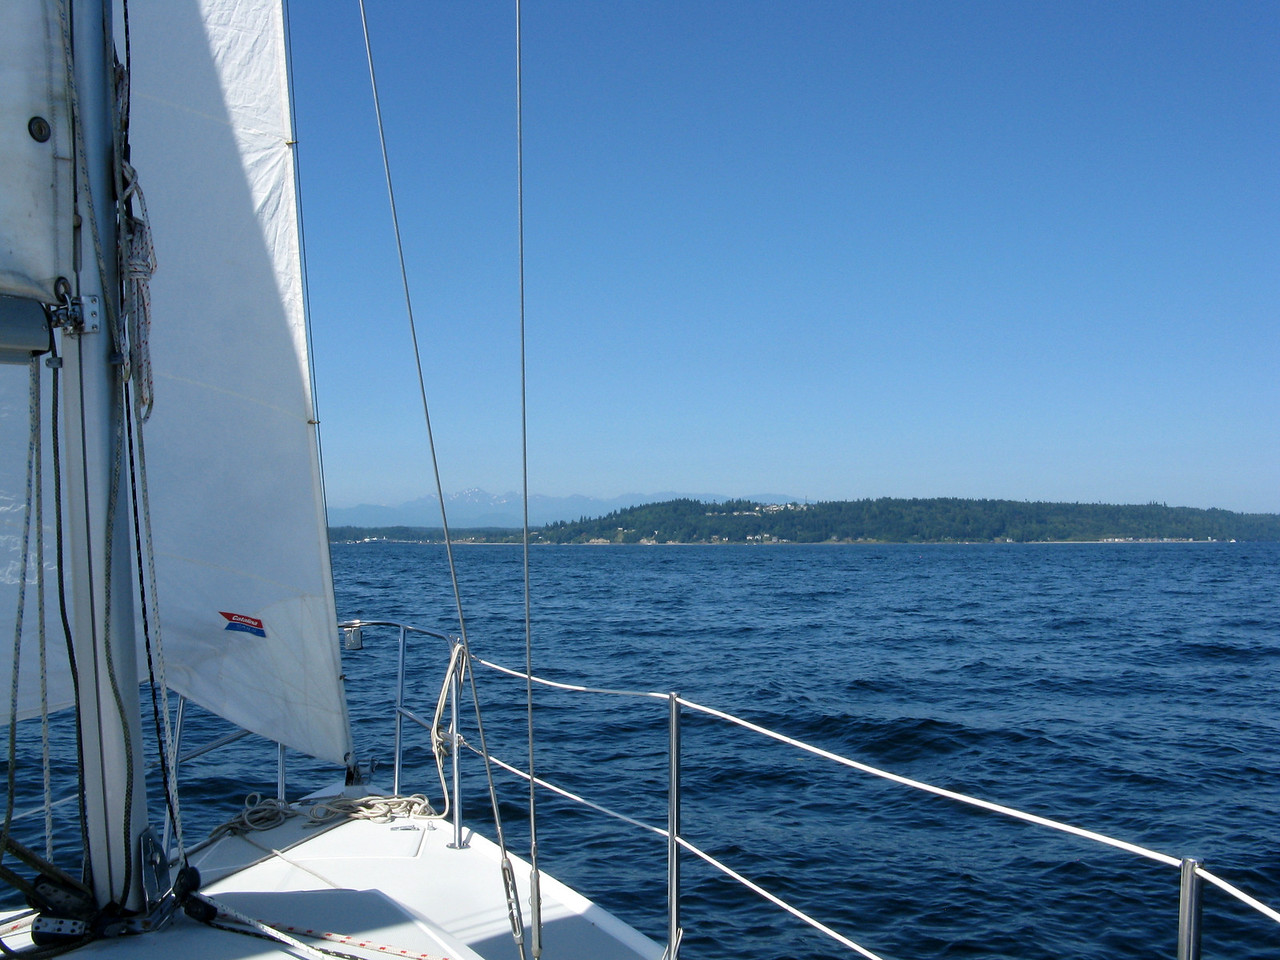 Headed west across Puget Sound.  The winds were light when we started out.